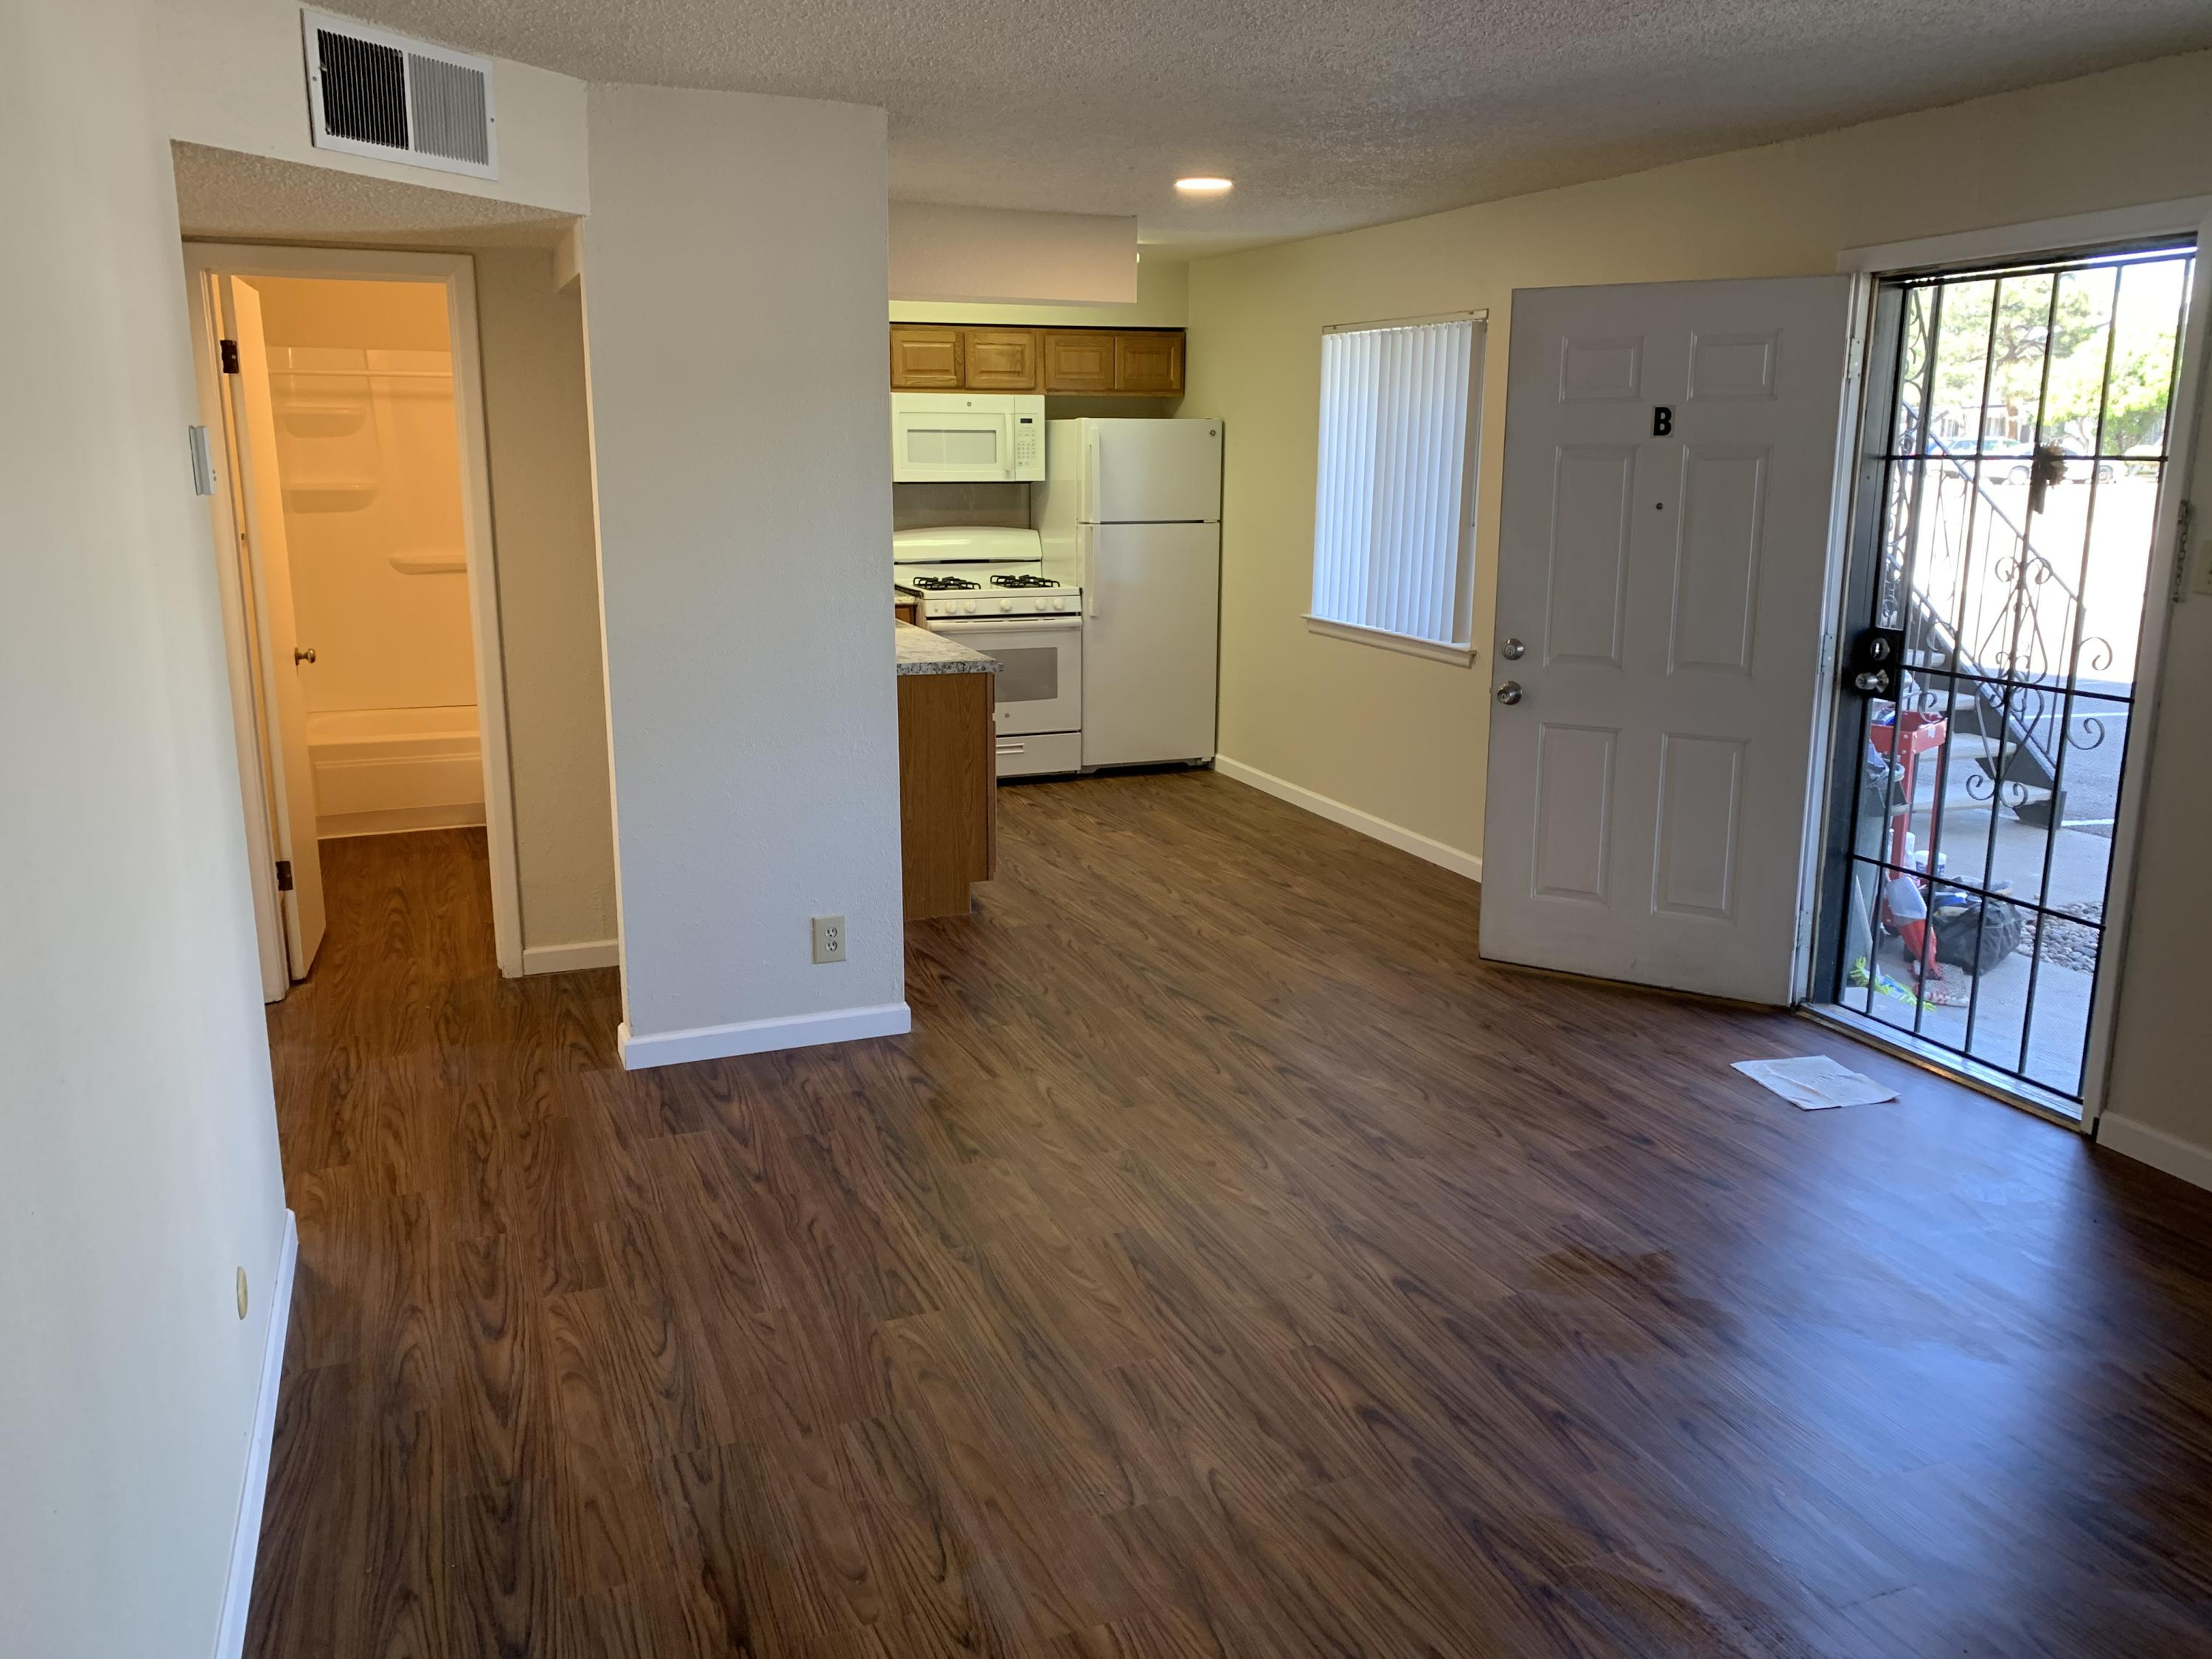 Cute, 2 bedroom 1 bath, move-in ready condo located in the heart of the city!!! 0.2 miles from Montgomery Park with lots of restaurants near by.  Perfect for First Time Home Buyers, Downsizers, or Investors.  Schedule a showing today!!